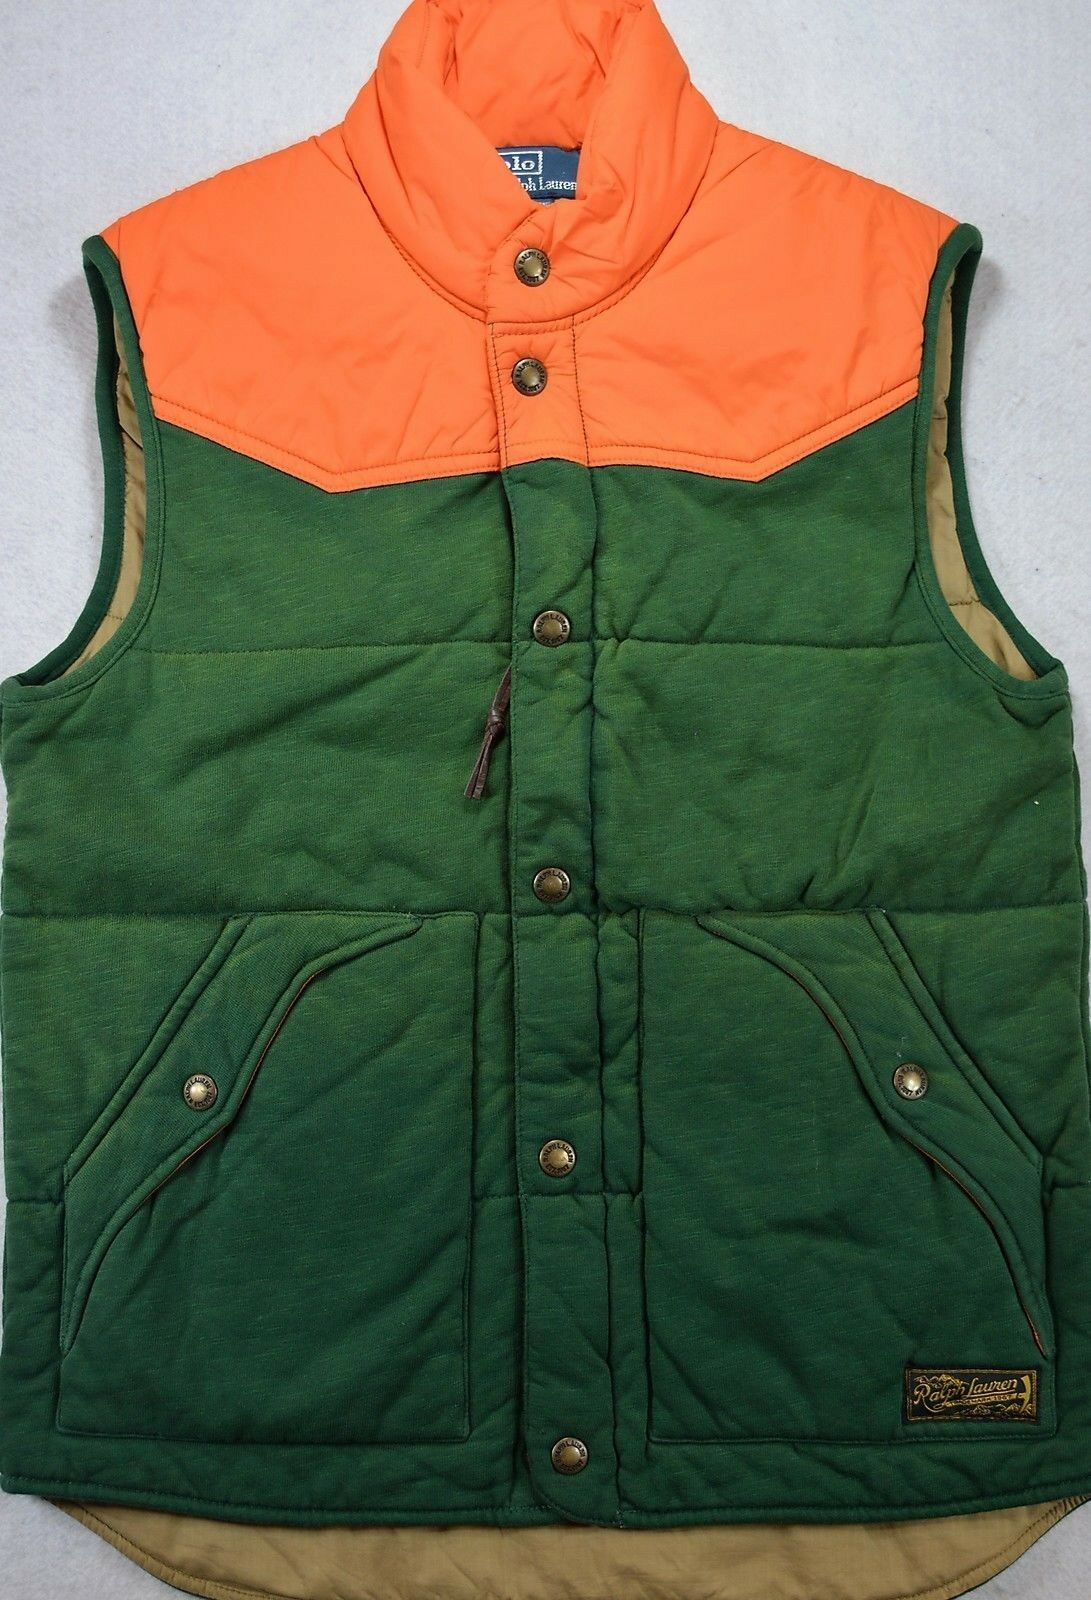 Polo Ralph Lauren Quilted Lined Outerwear Vest Größe S Small NWT 198